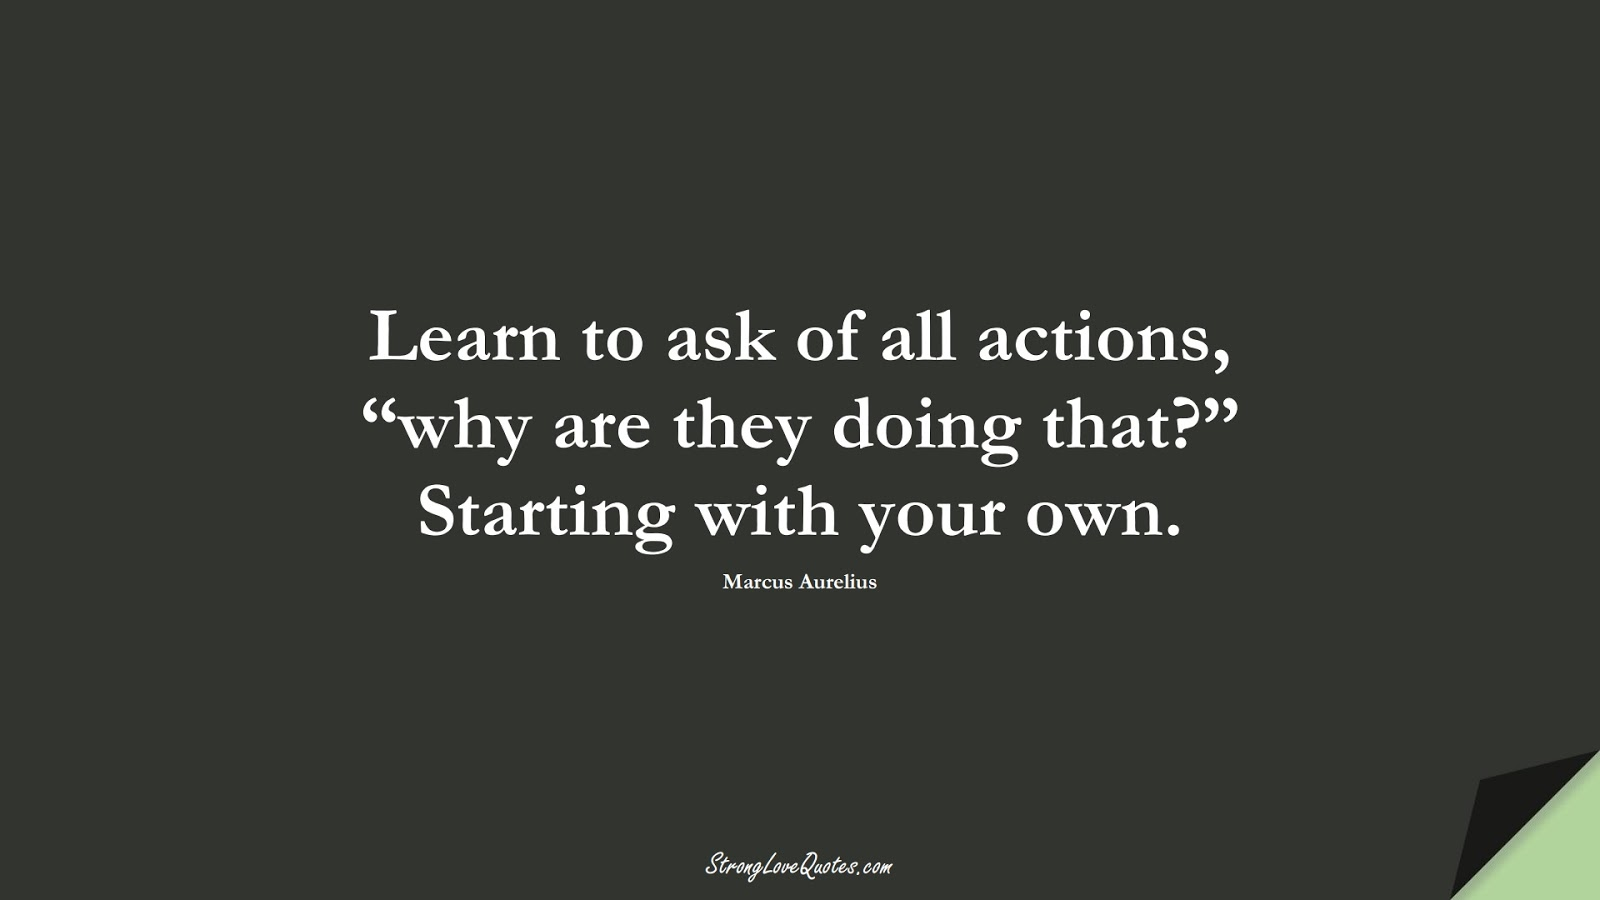 """Learn to ask of all actions, """"why are they doing that?"""" Starting with your own. (Marcus Aurelius);  #LearningQuotes"""